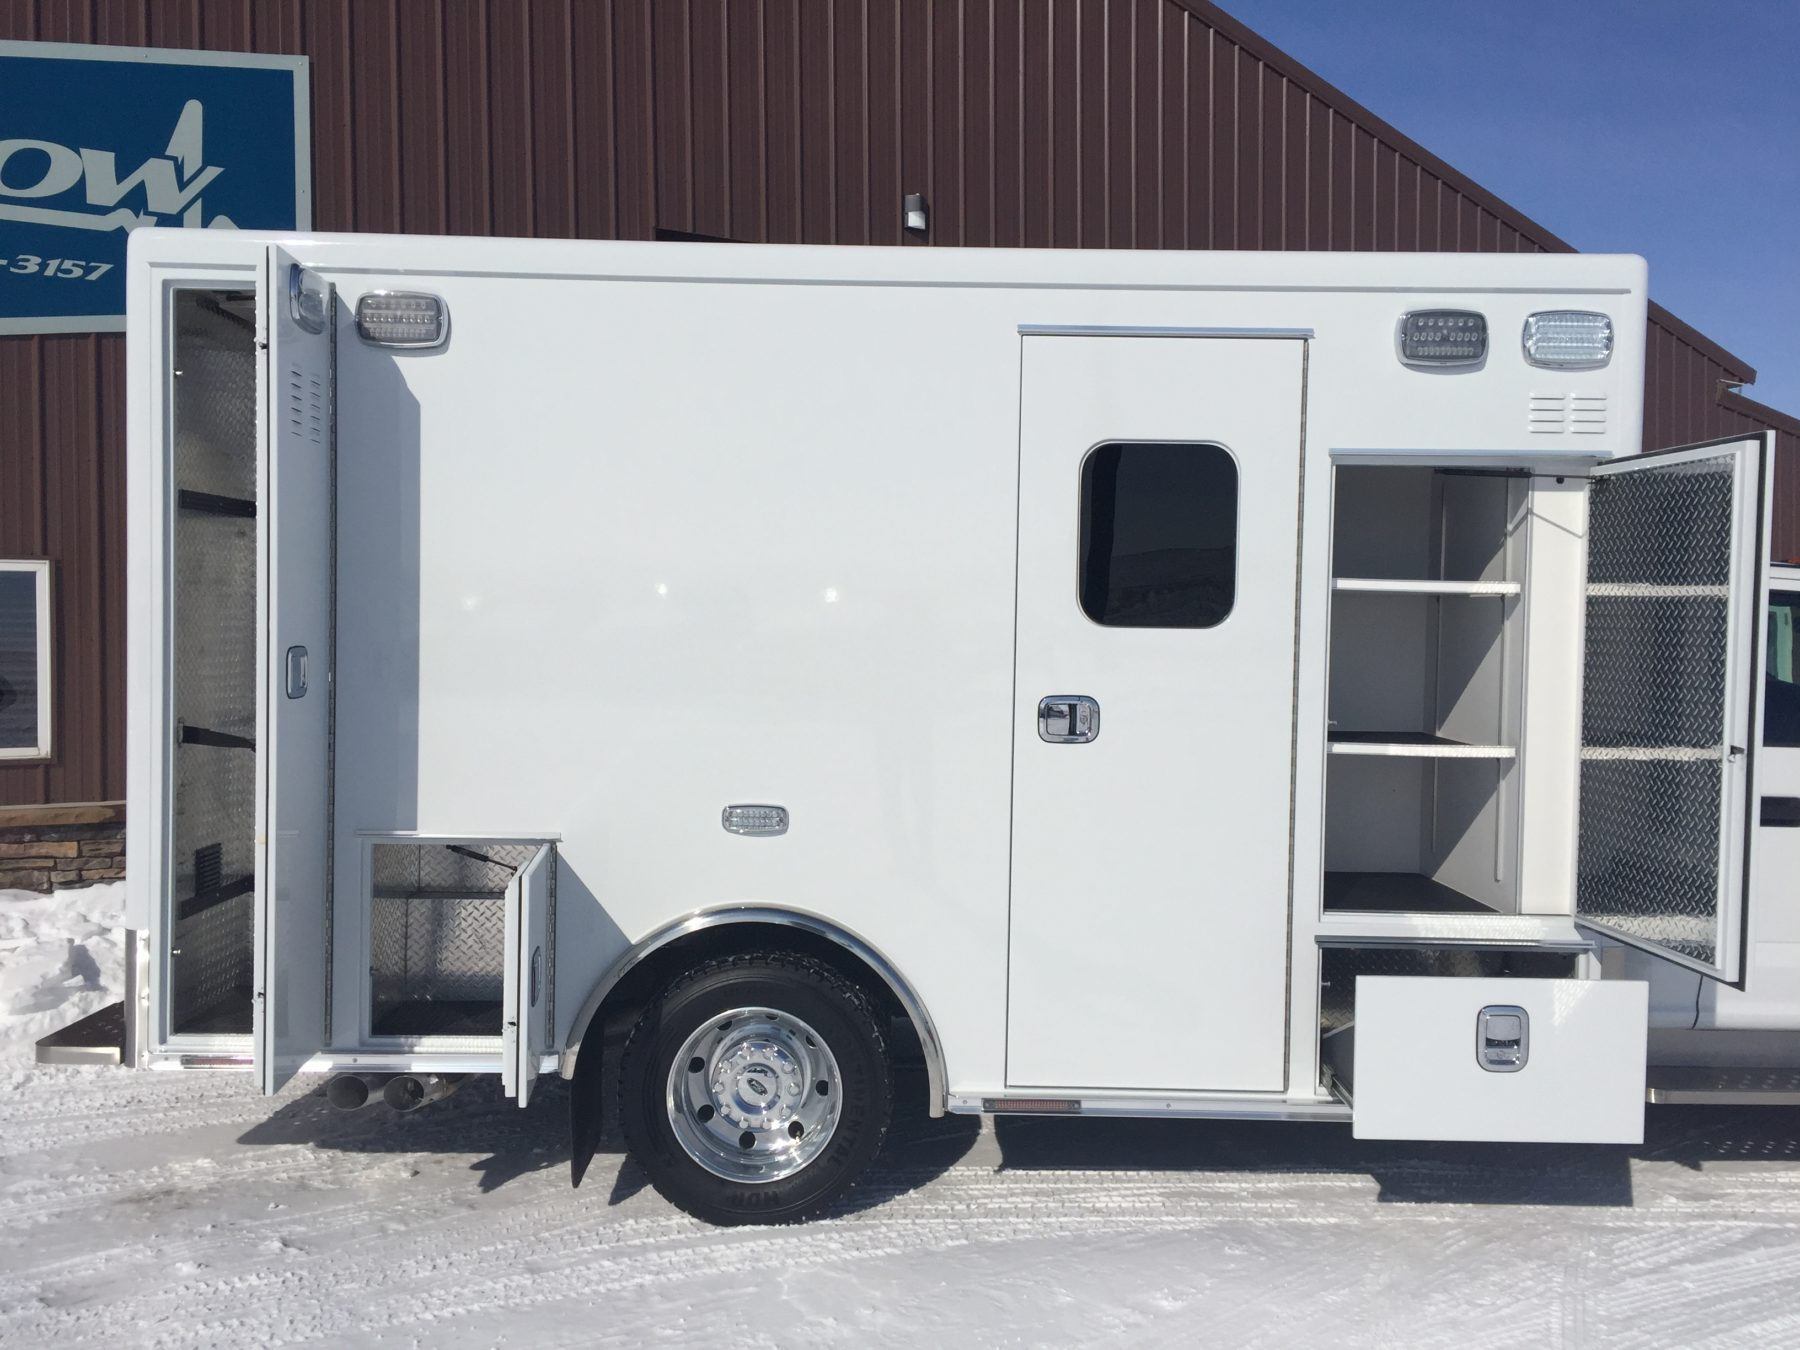 2019 Ford F450 4x4 Heavy Duty Ambulance For Sale – Picture 5